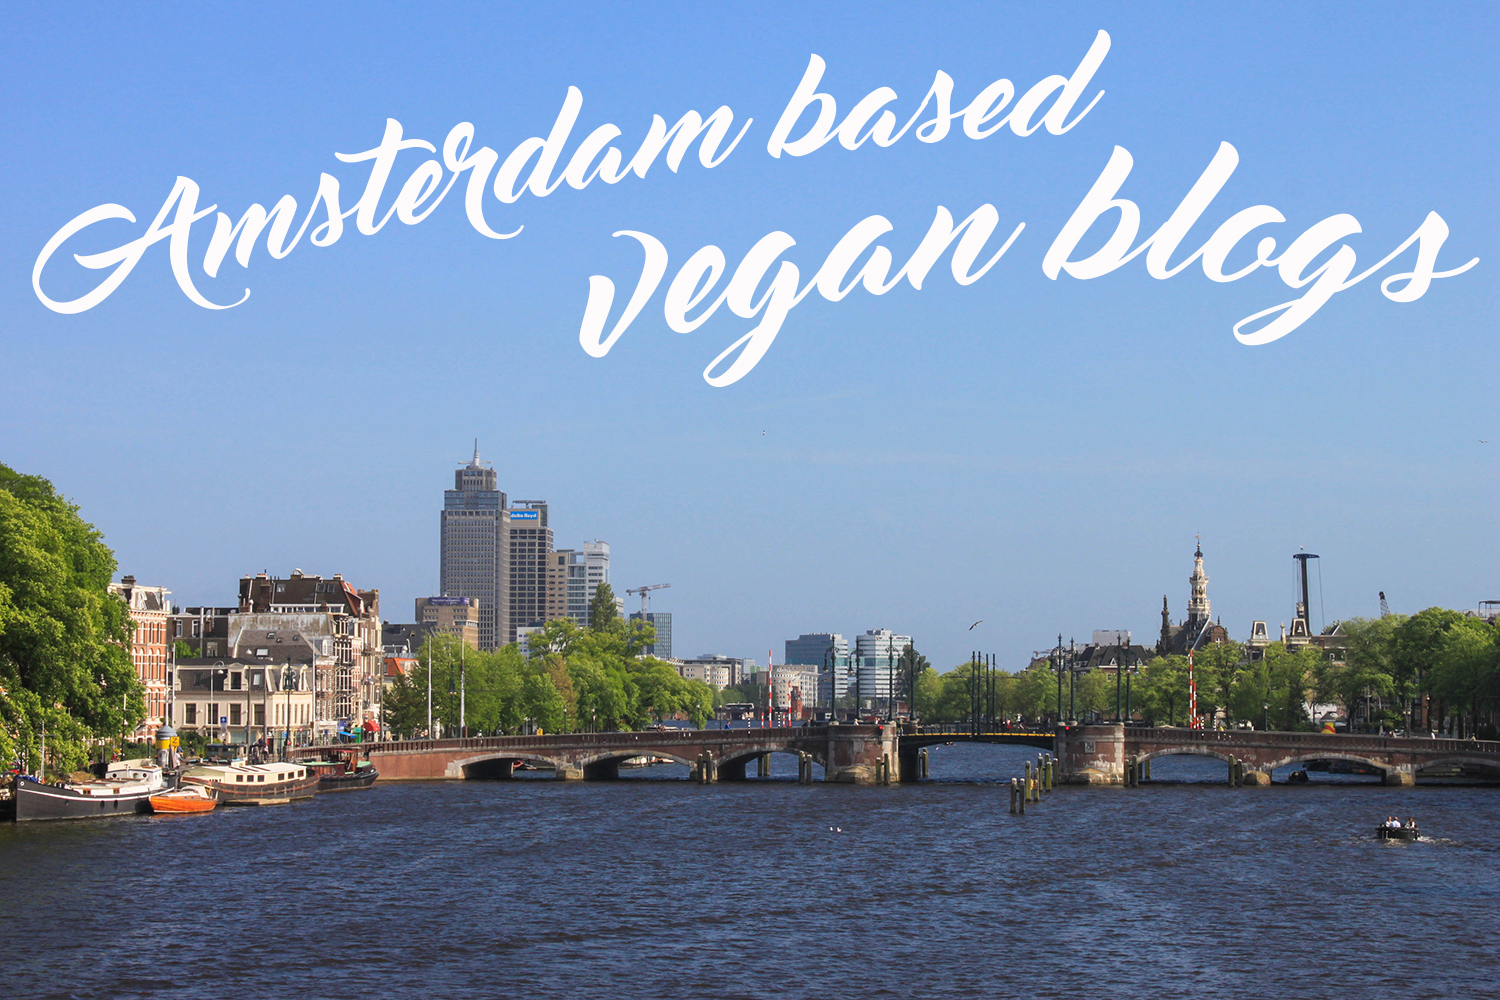 amsterdam vegan blogs